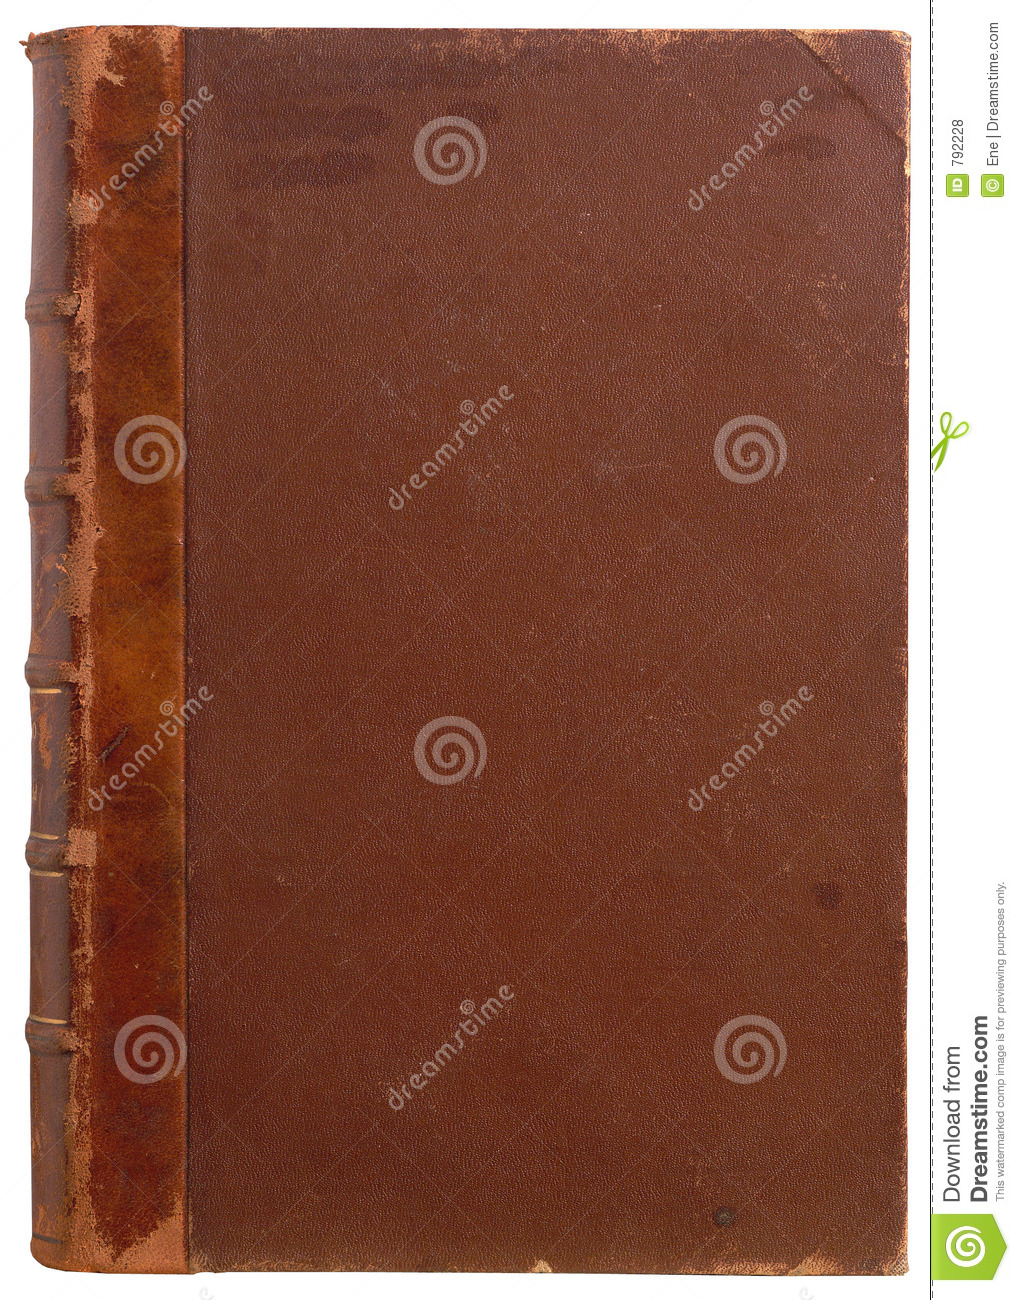 Book Cover Stock Photography : Book cover royalty free stock photos image